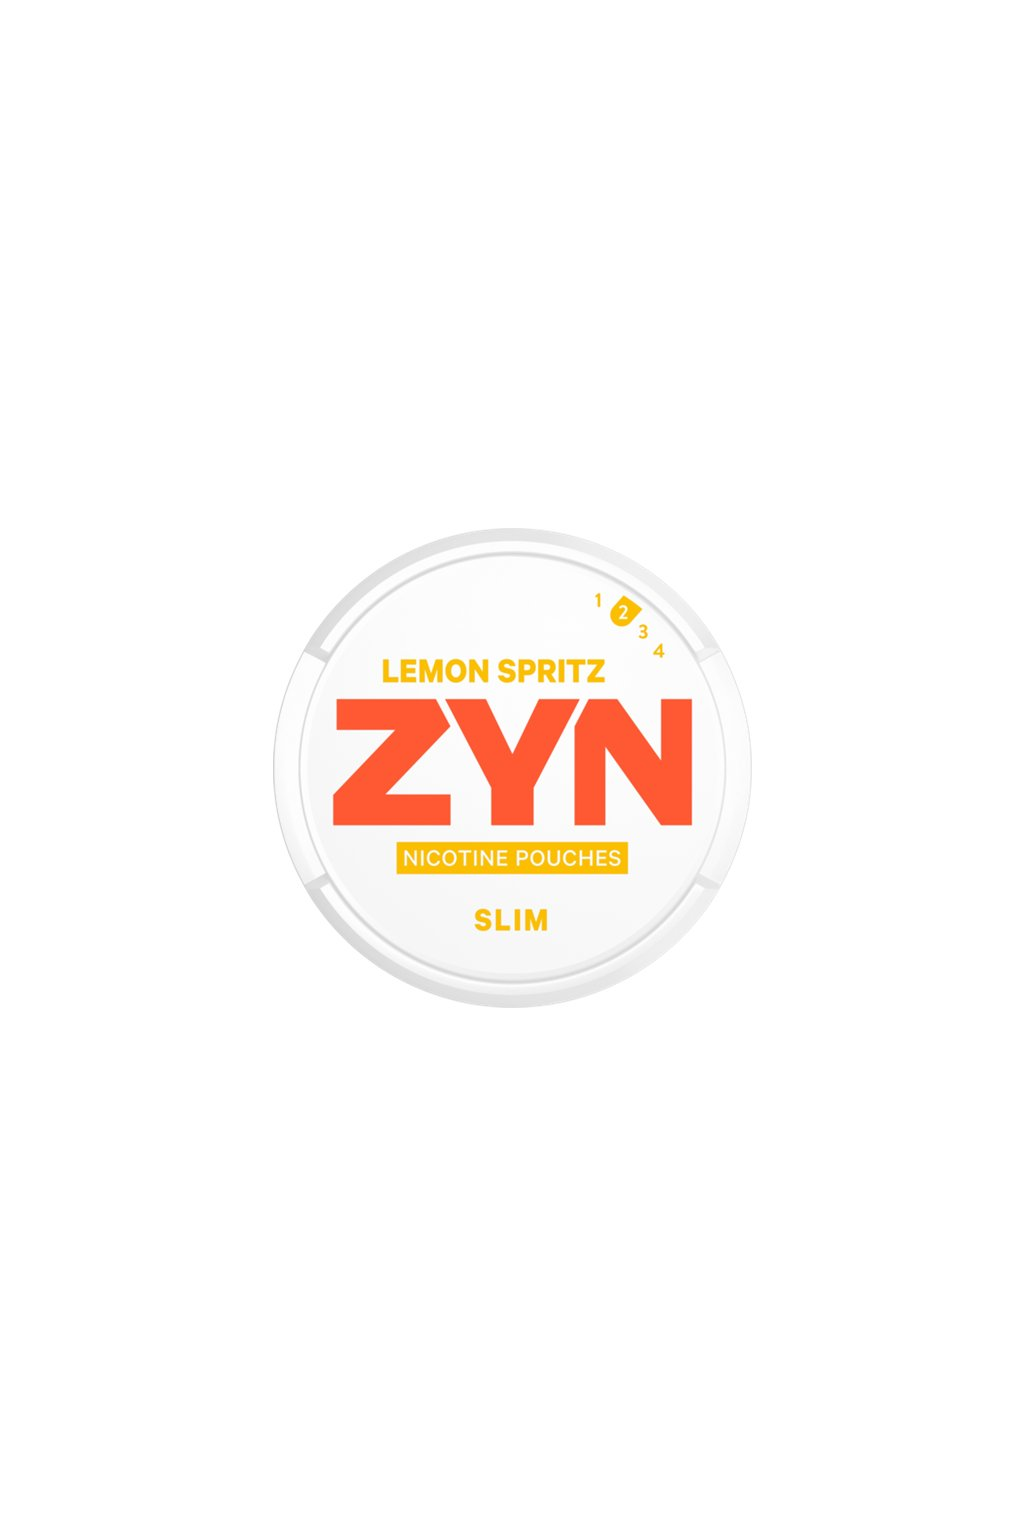 zyn lemon spritz slim